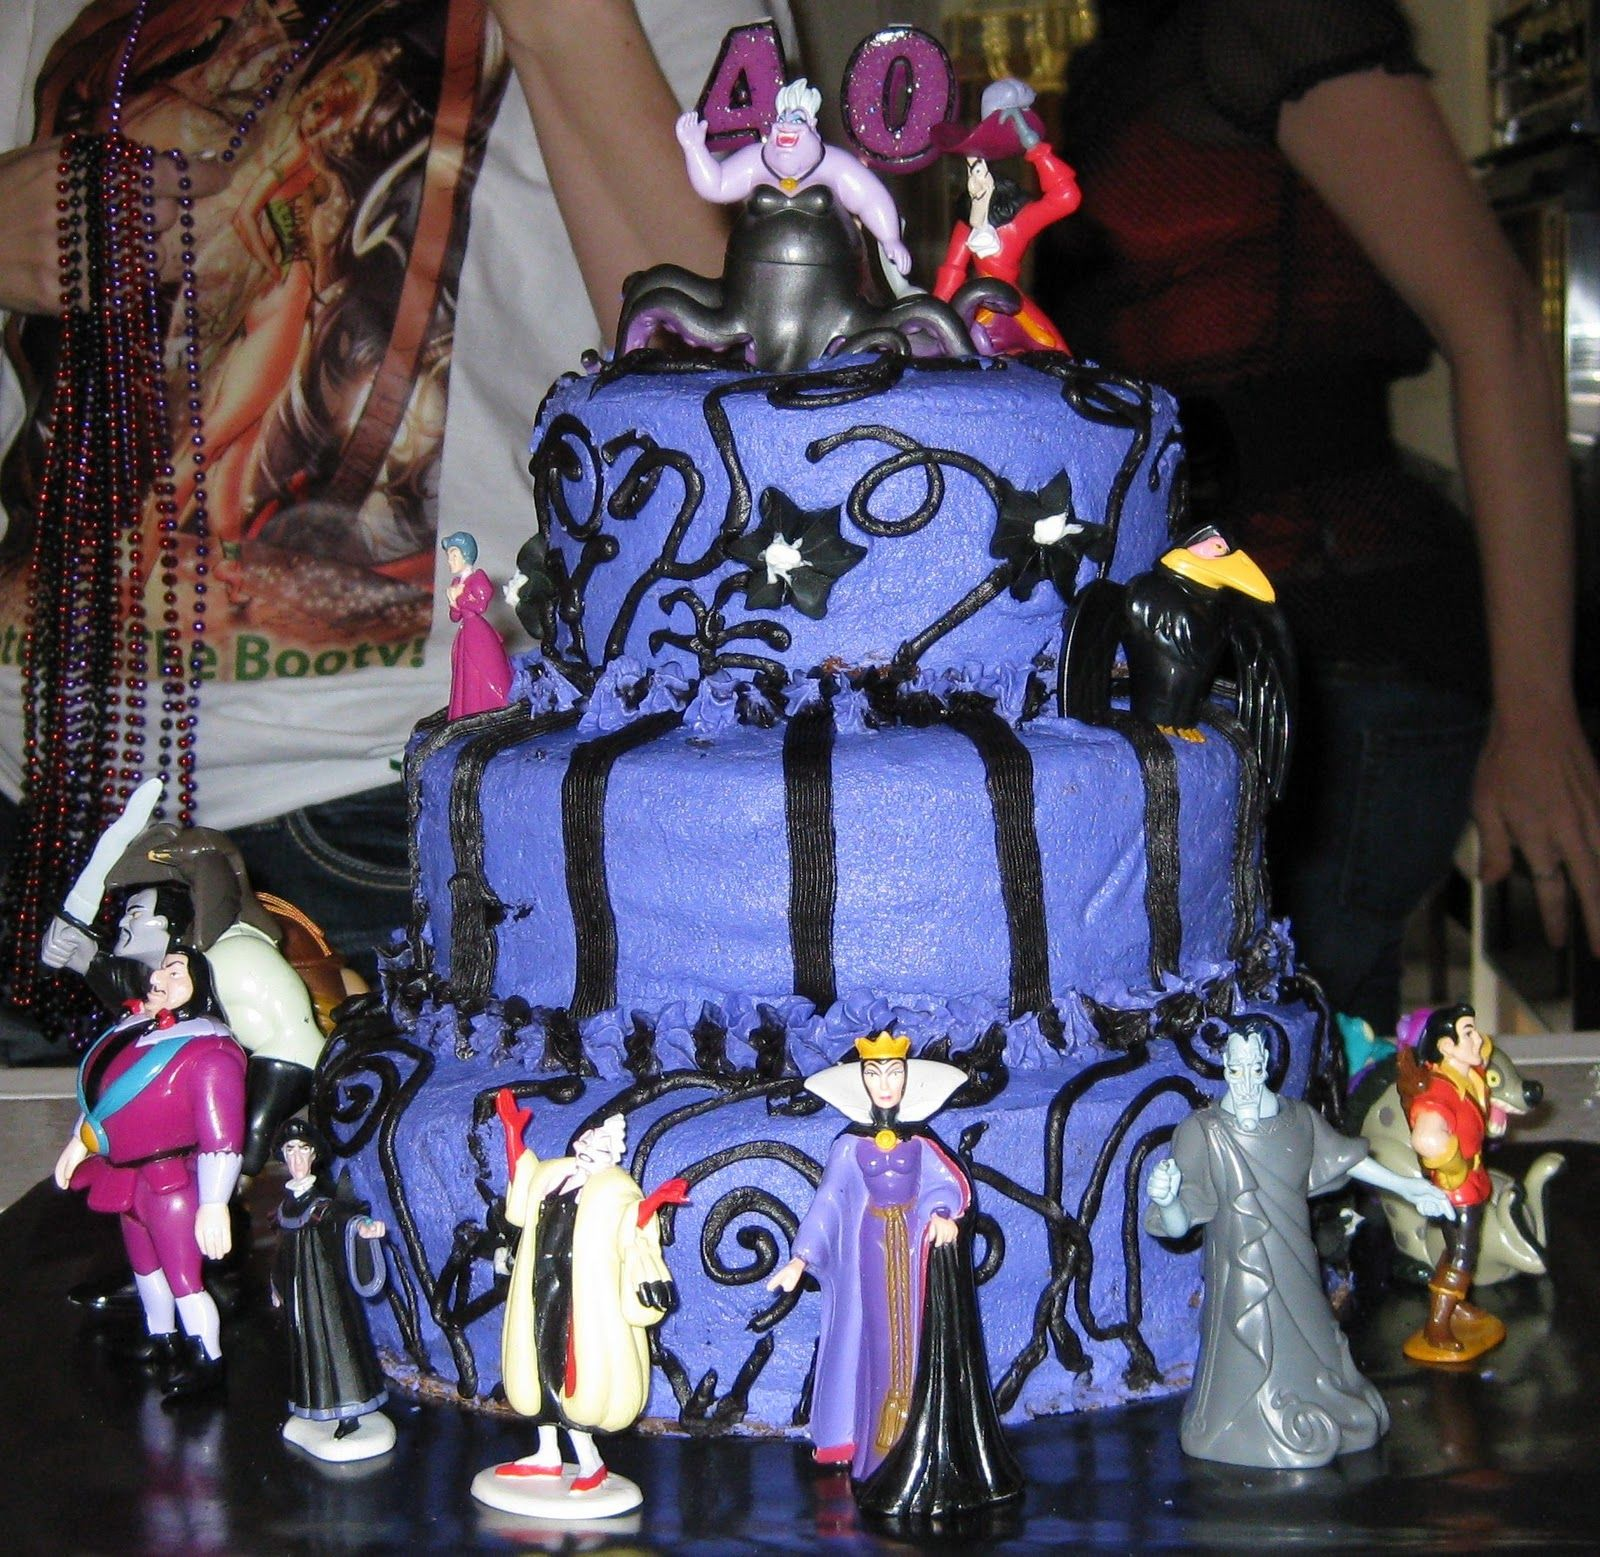 OFFICIAL Disney Cake Chatter Thread - Part III - Page 176 - The DIS Discussion Forums - DISboards.com